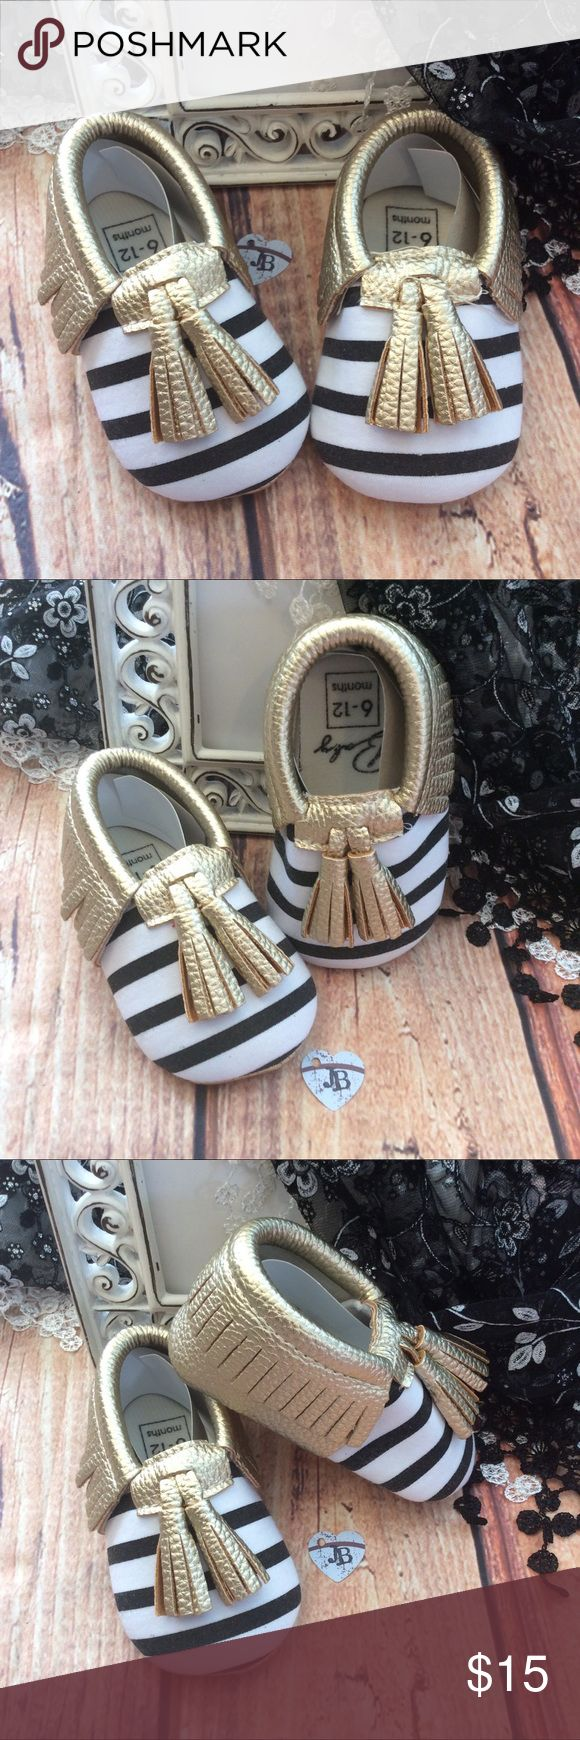 Boutique Baby Unisex Striped mocassin Shoes Gender neutral Moccasin style Baby crib shoe. Black and white stripe with gold fringe and tassels. Super cute for summer! Shoes Baby & Walker